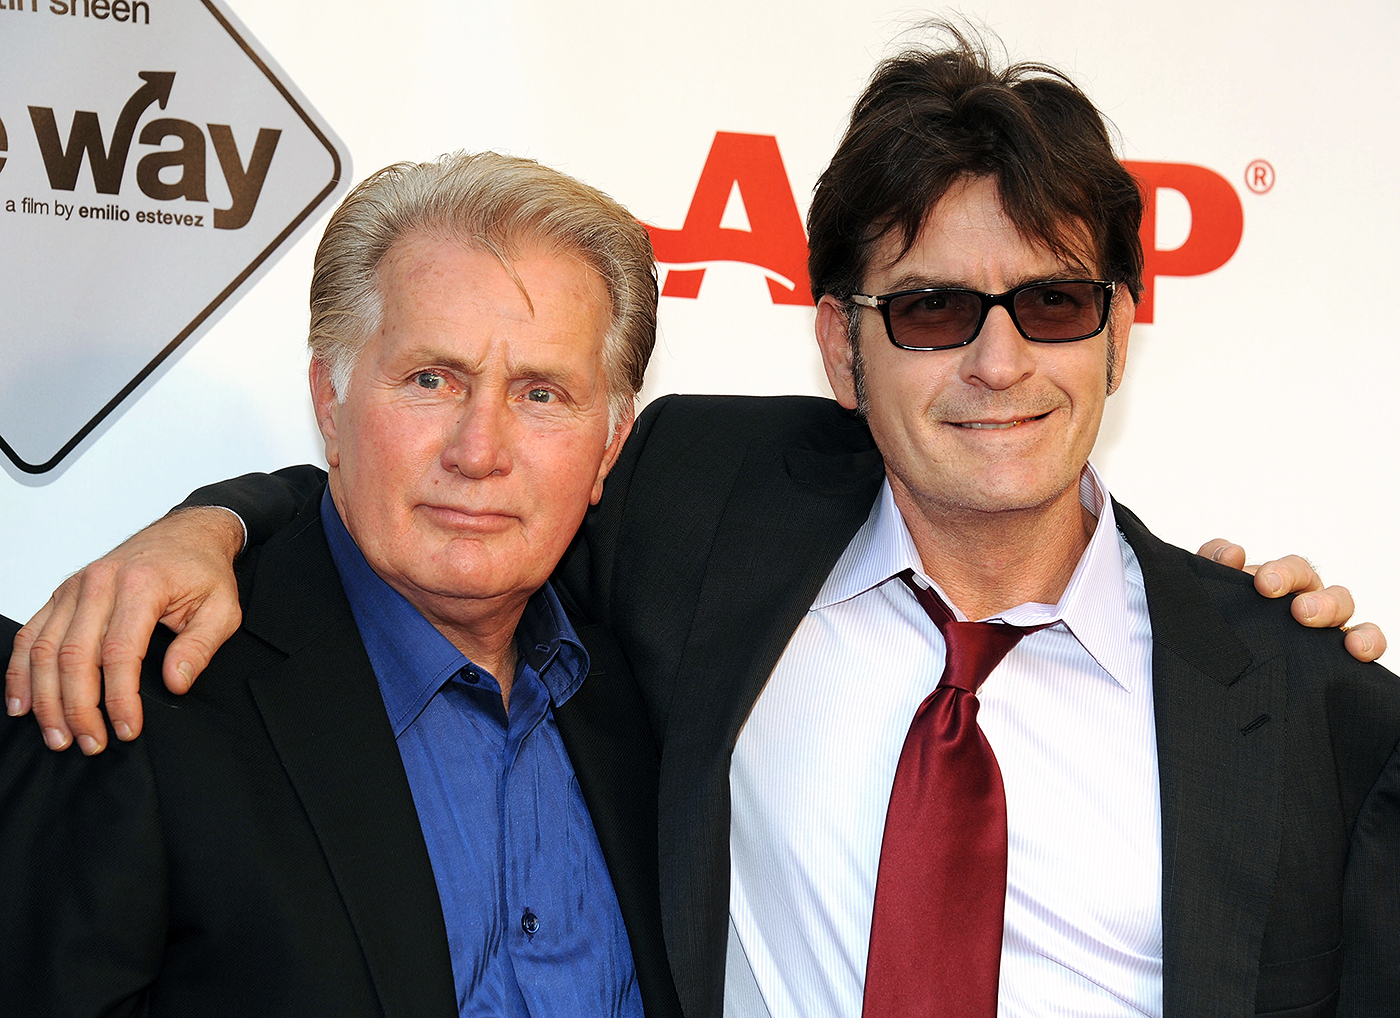 Father-son duo and actor Martin and Charlie Sheen